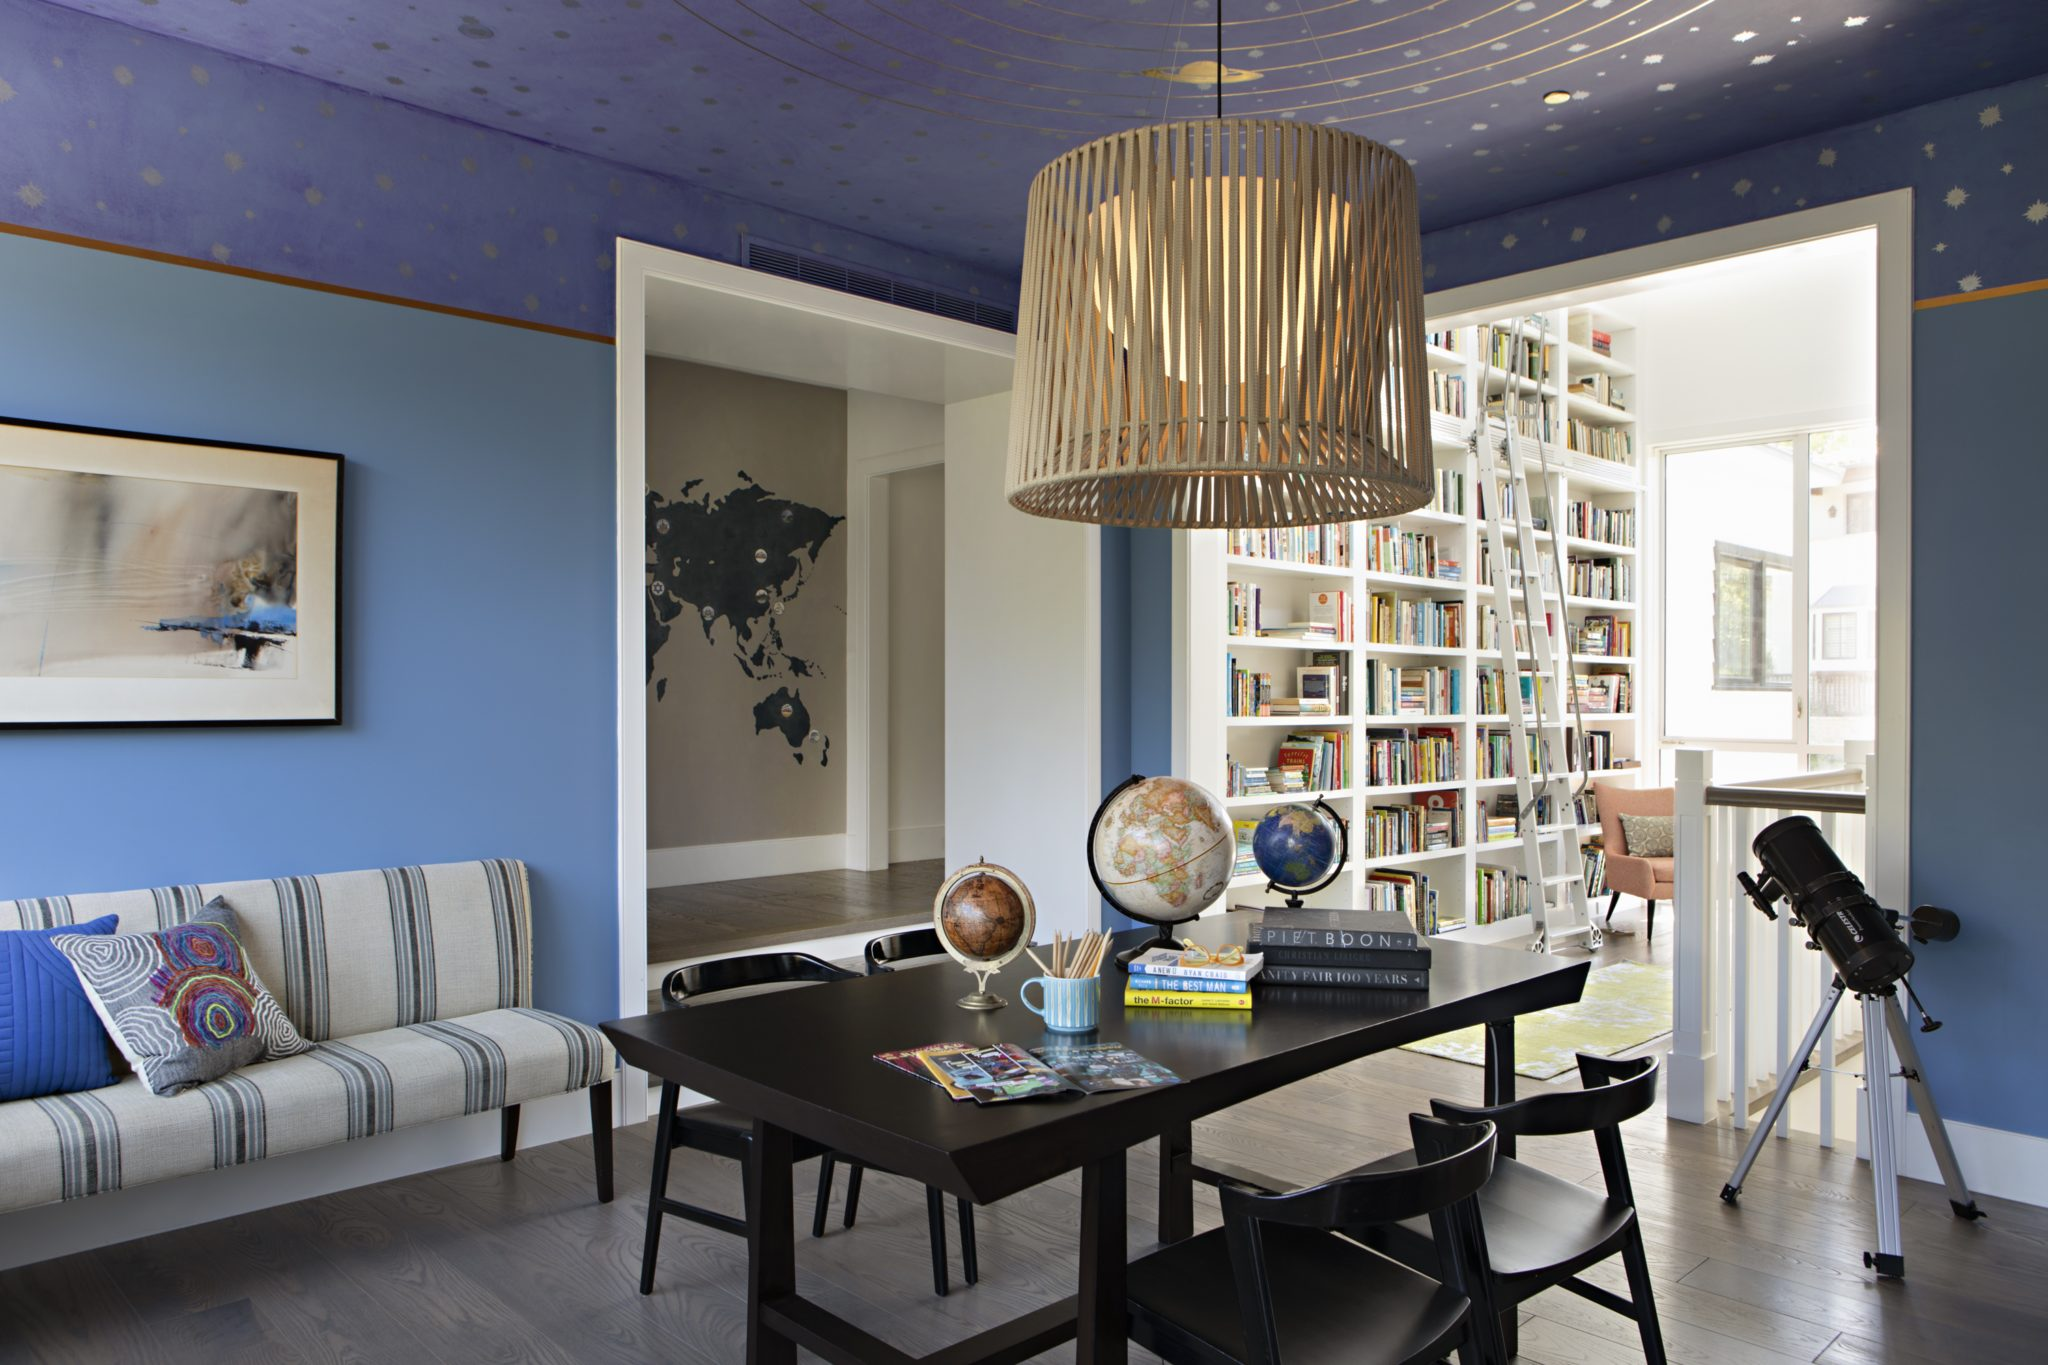 Children's reading homework room with celestial mural ceiling by SUBU Design Architecture